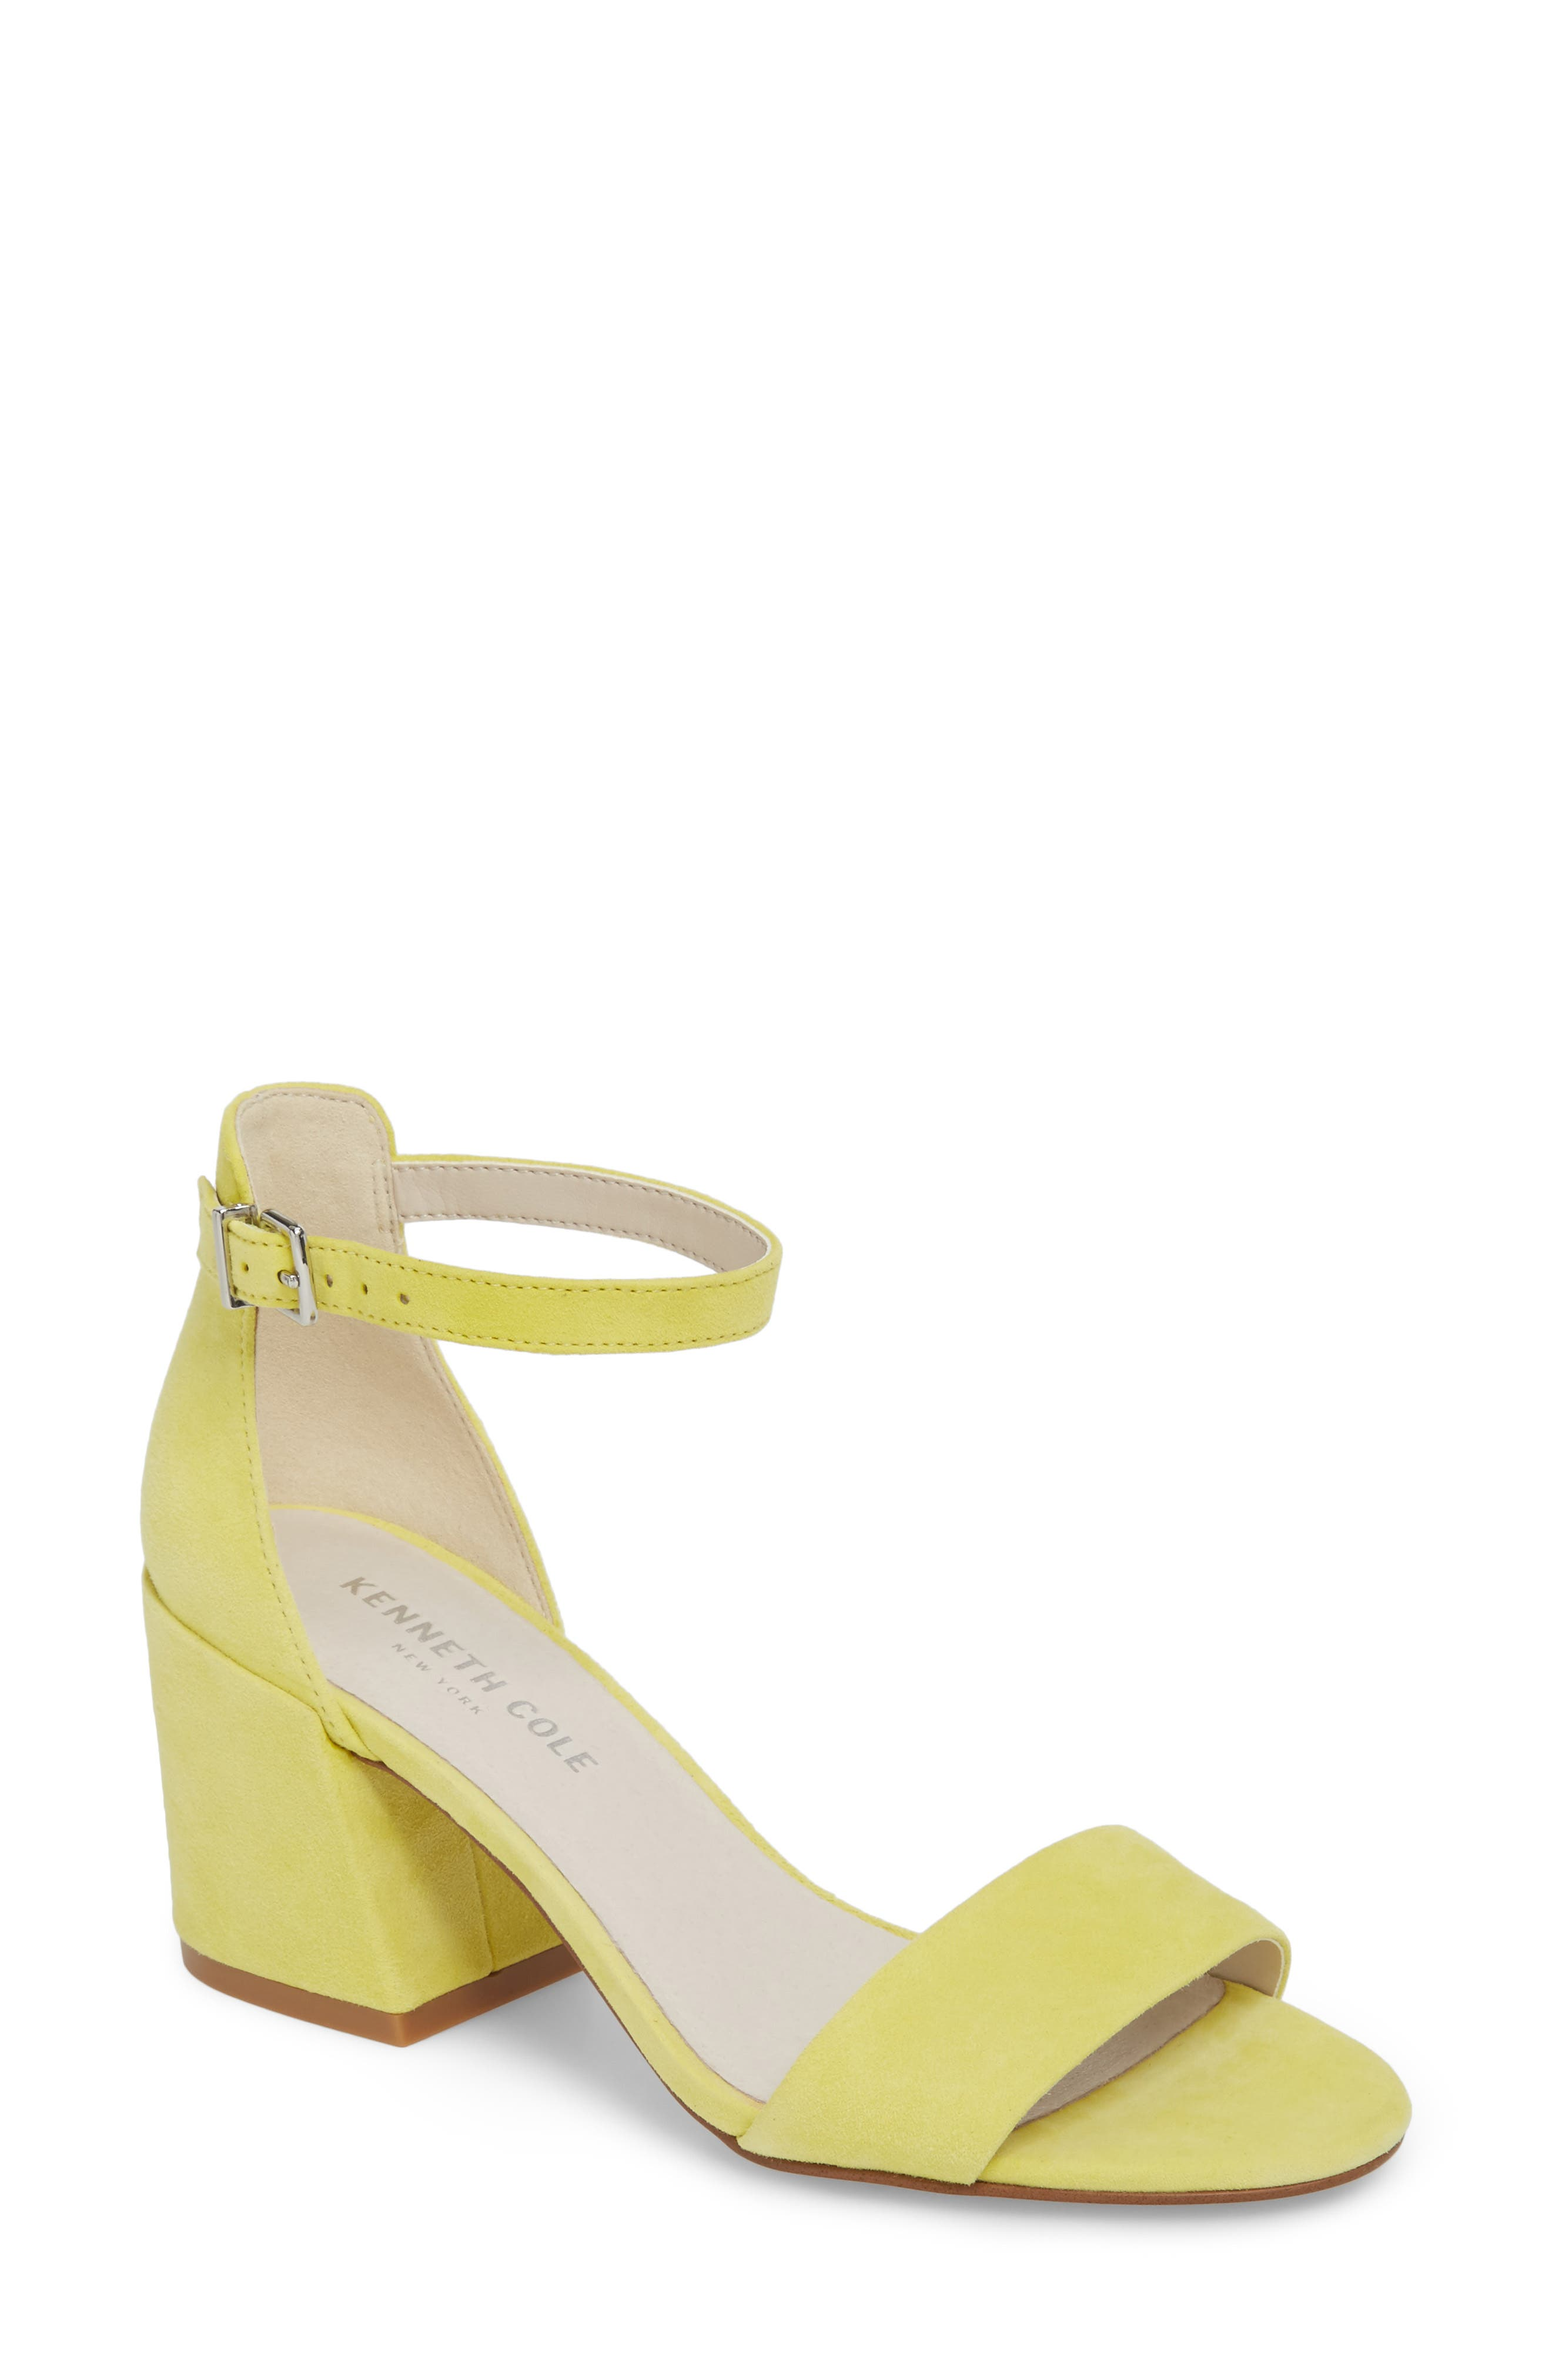 Kenneth Cole New York Hannon Block Heel Ankle Strap Sandal (Women)